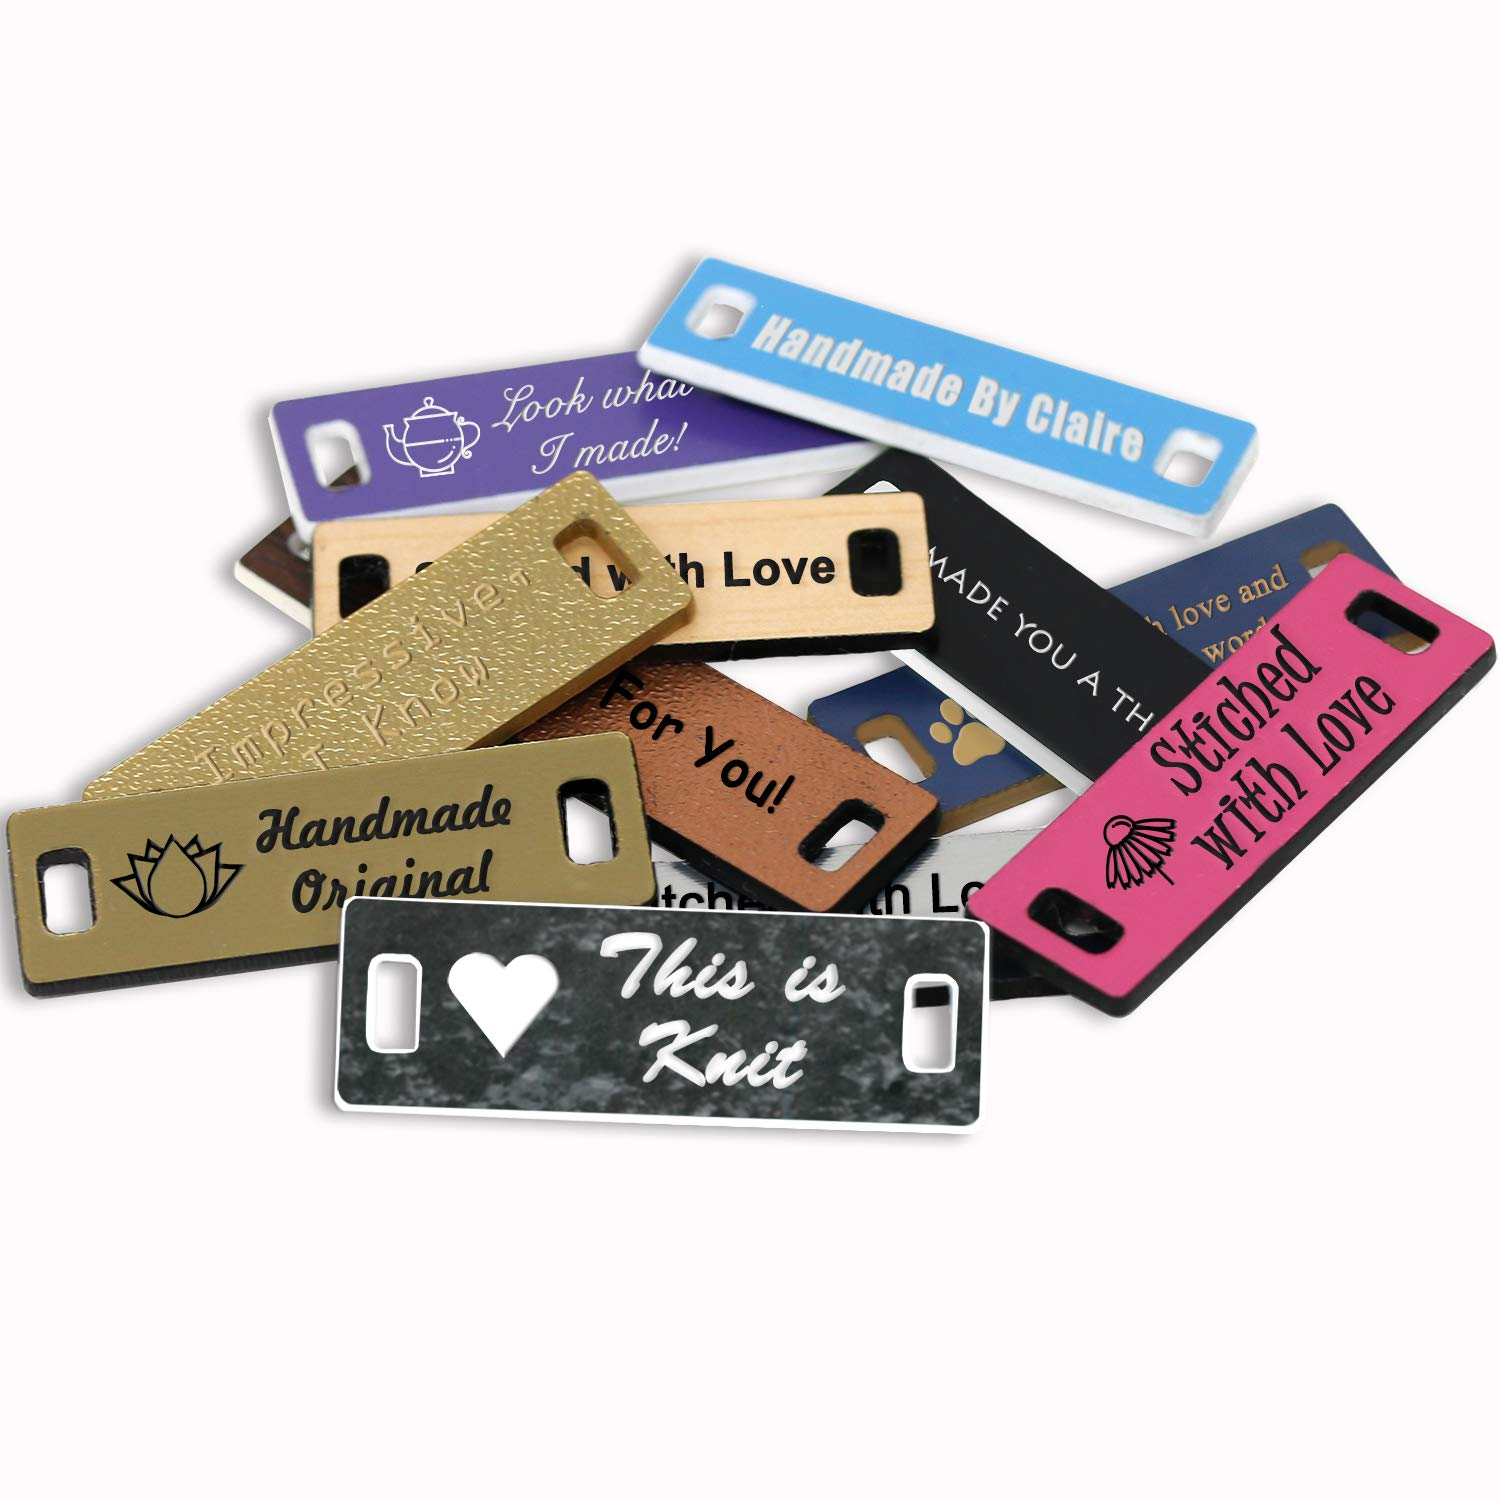 LHS Engraving B4 Personalized Handmade Tags Custom Engraved Yellow Plastic Sewing /& Knitting Notions Black Lettering USA